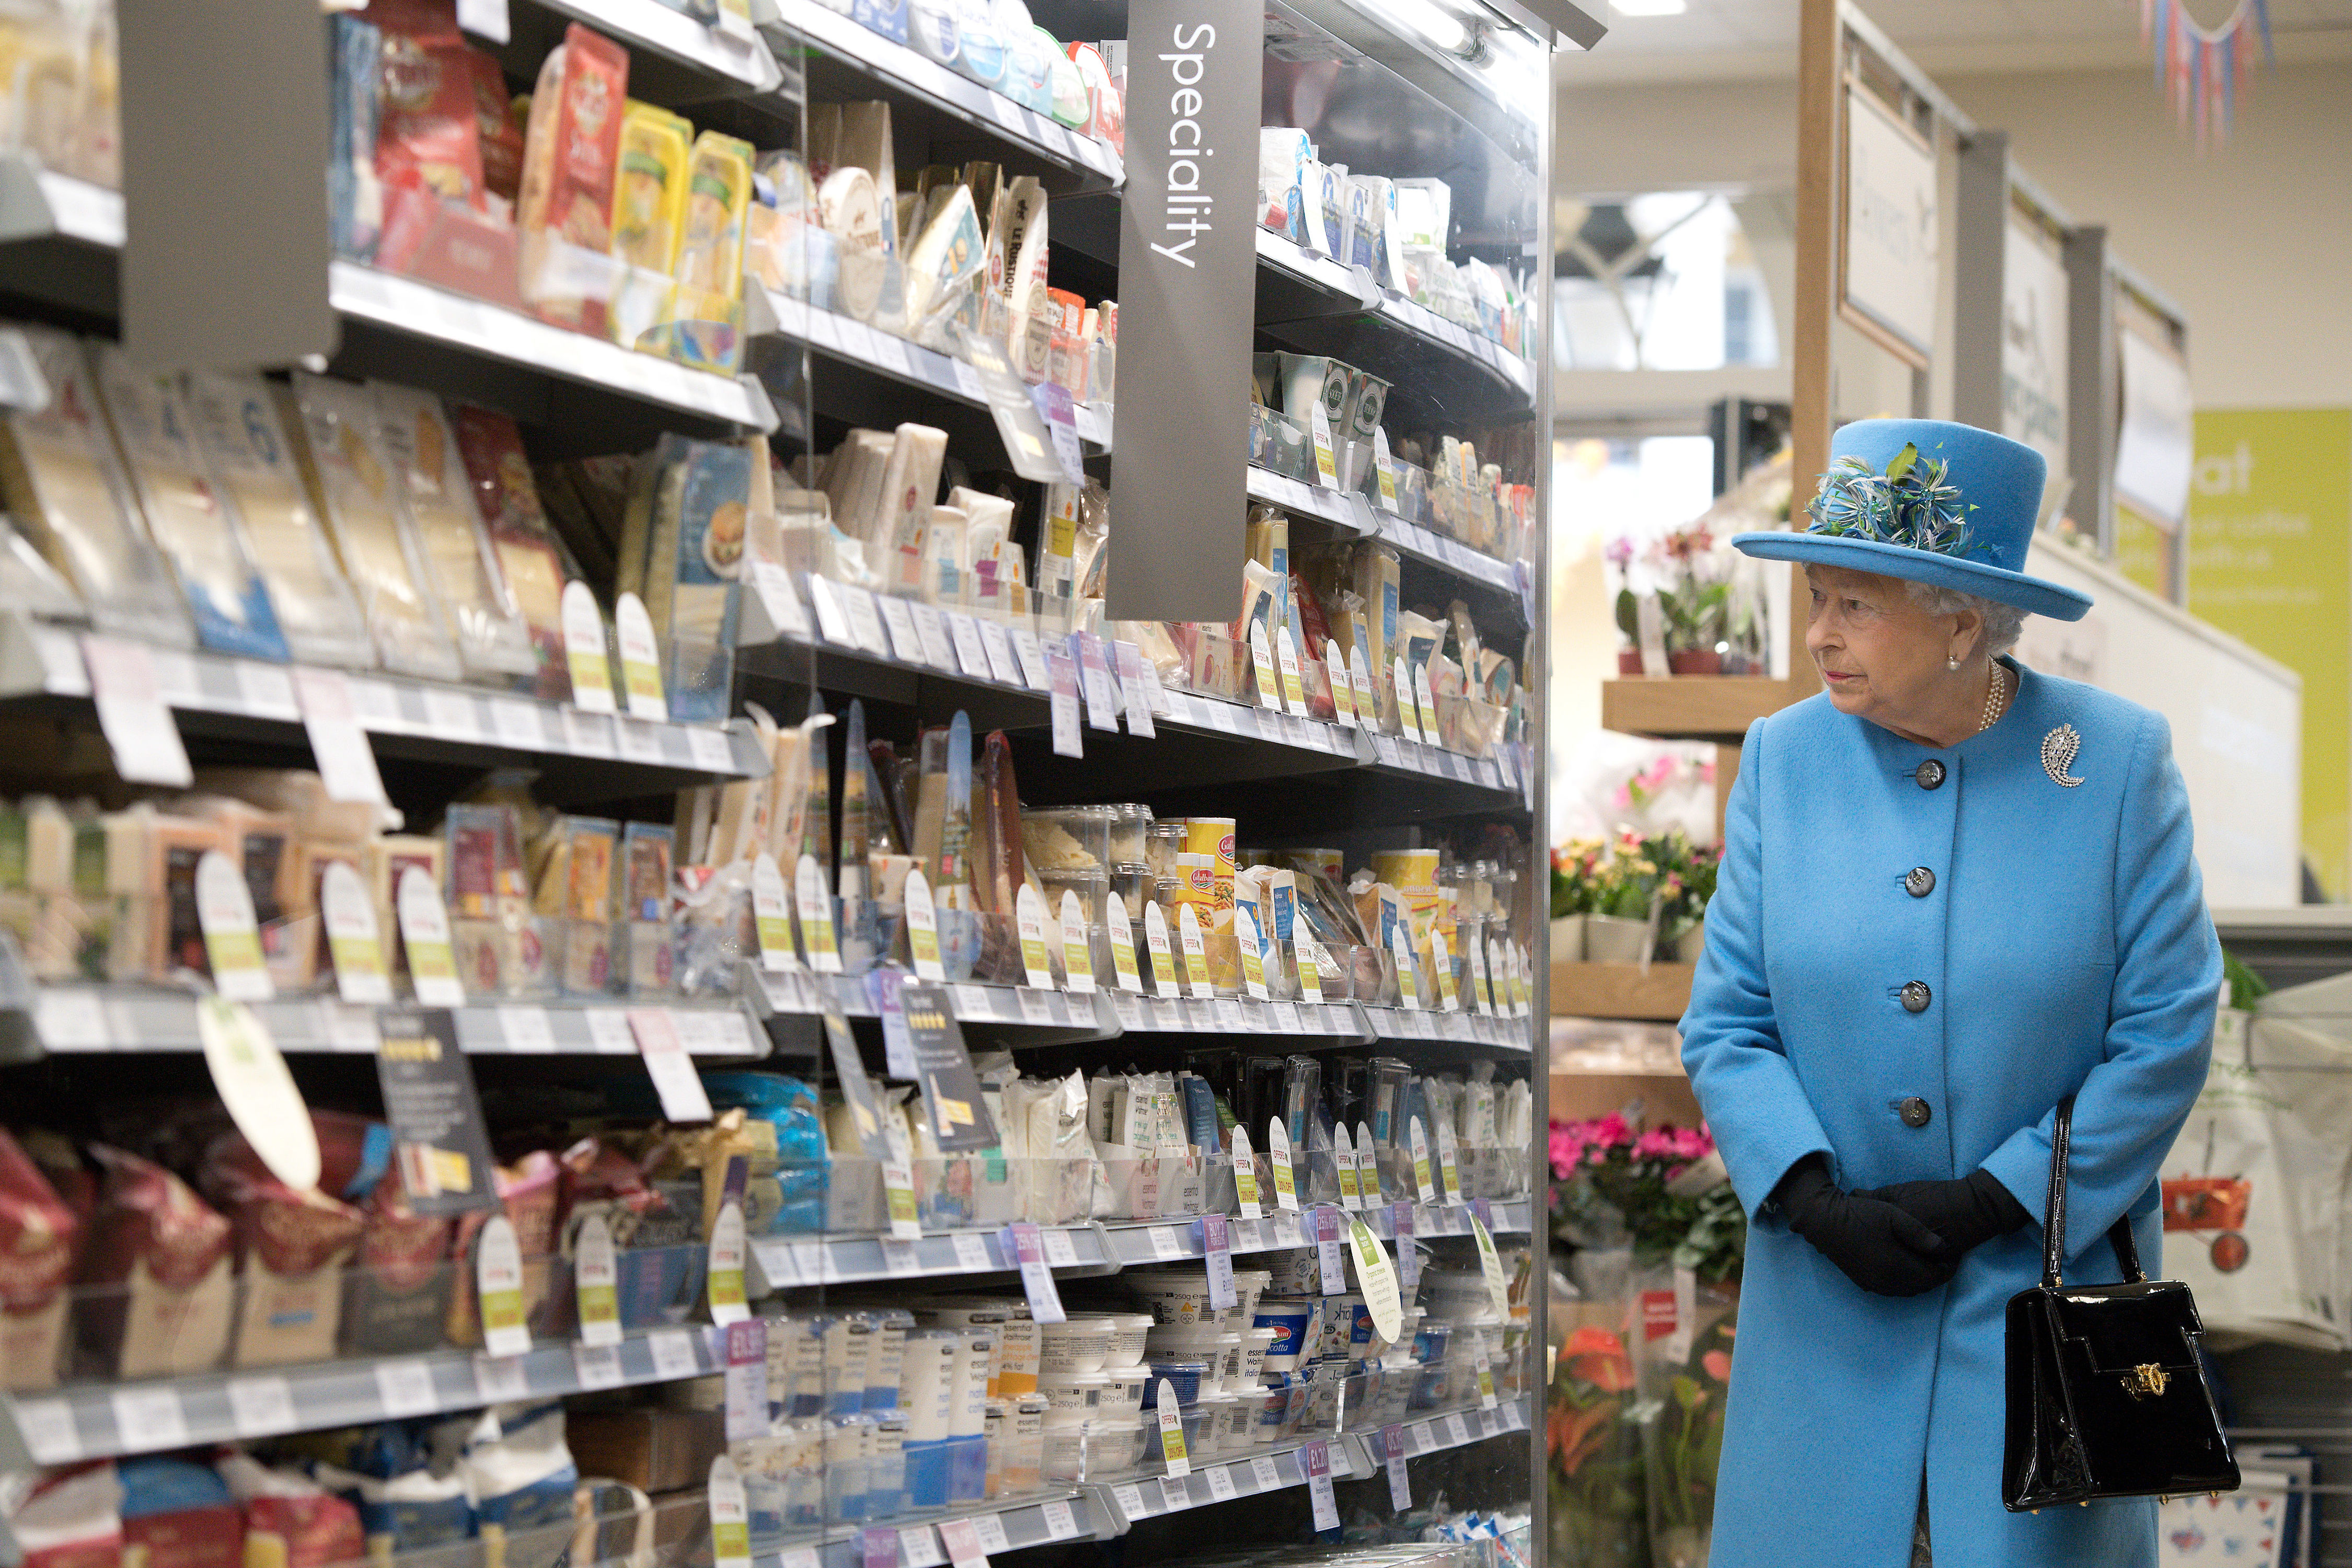 Want To Shop Like The Royal Family? Start At These Grocery Stores